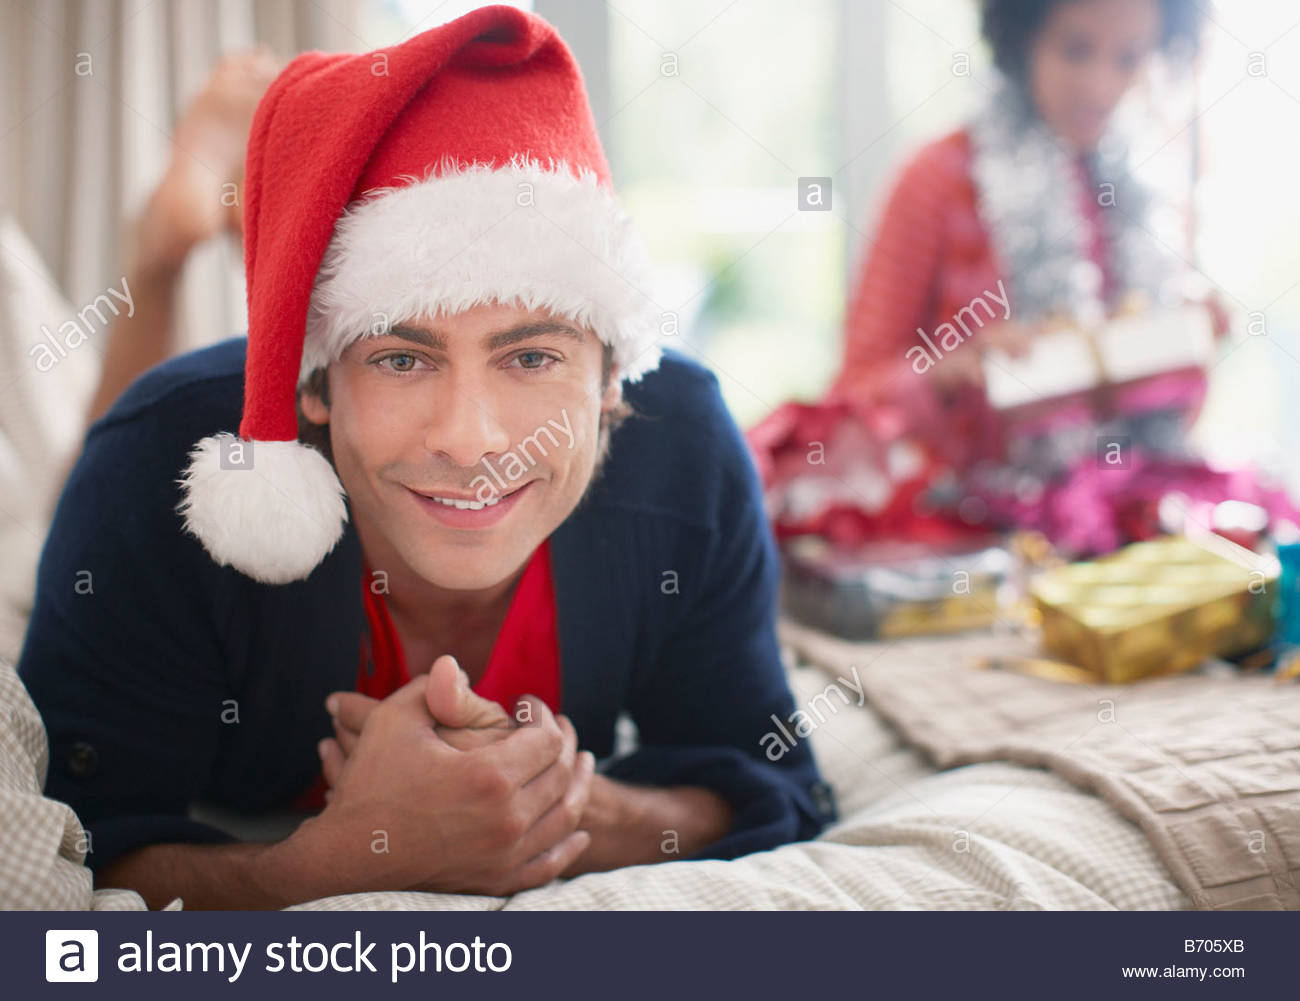 Man laying on bed in Santa hat - Stock Image